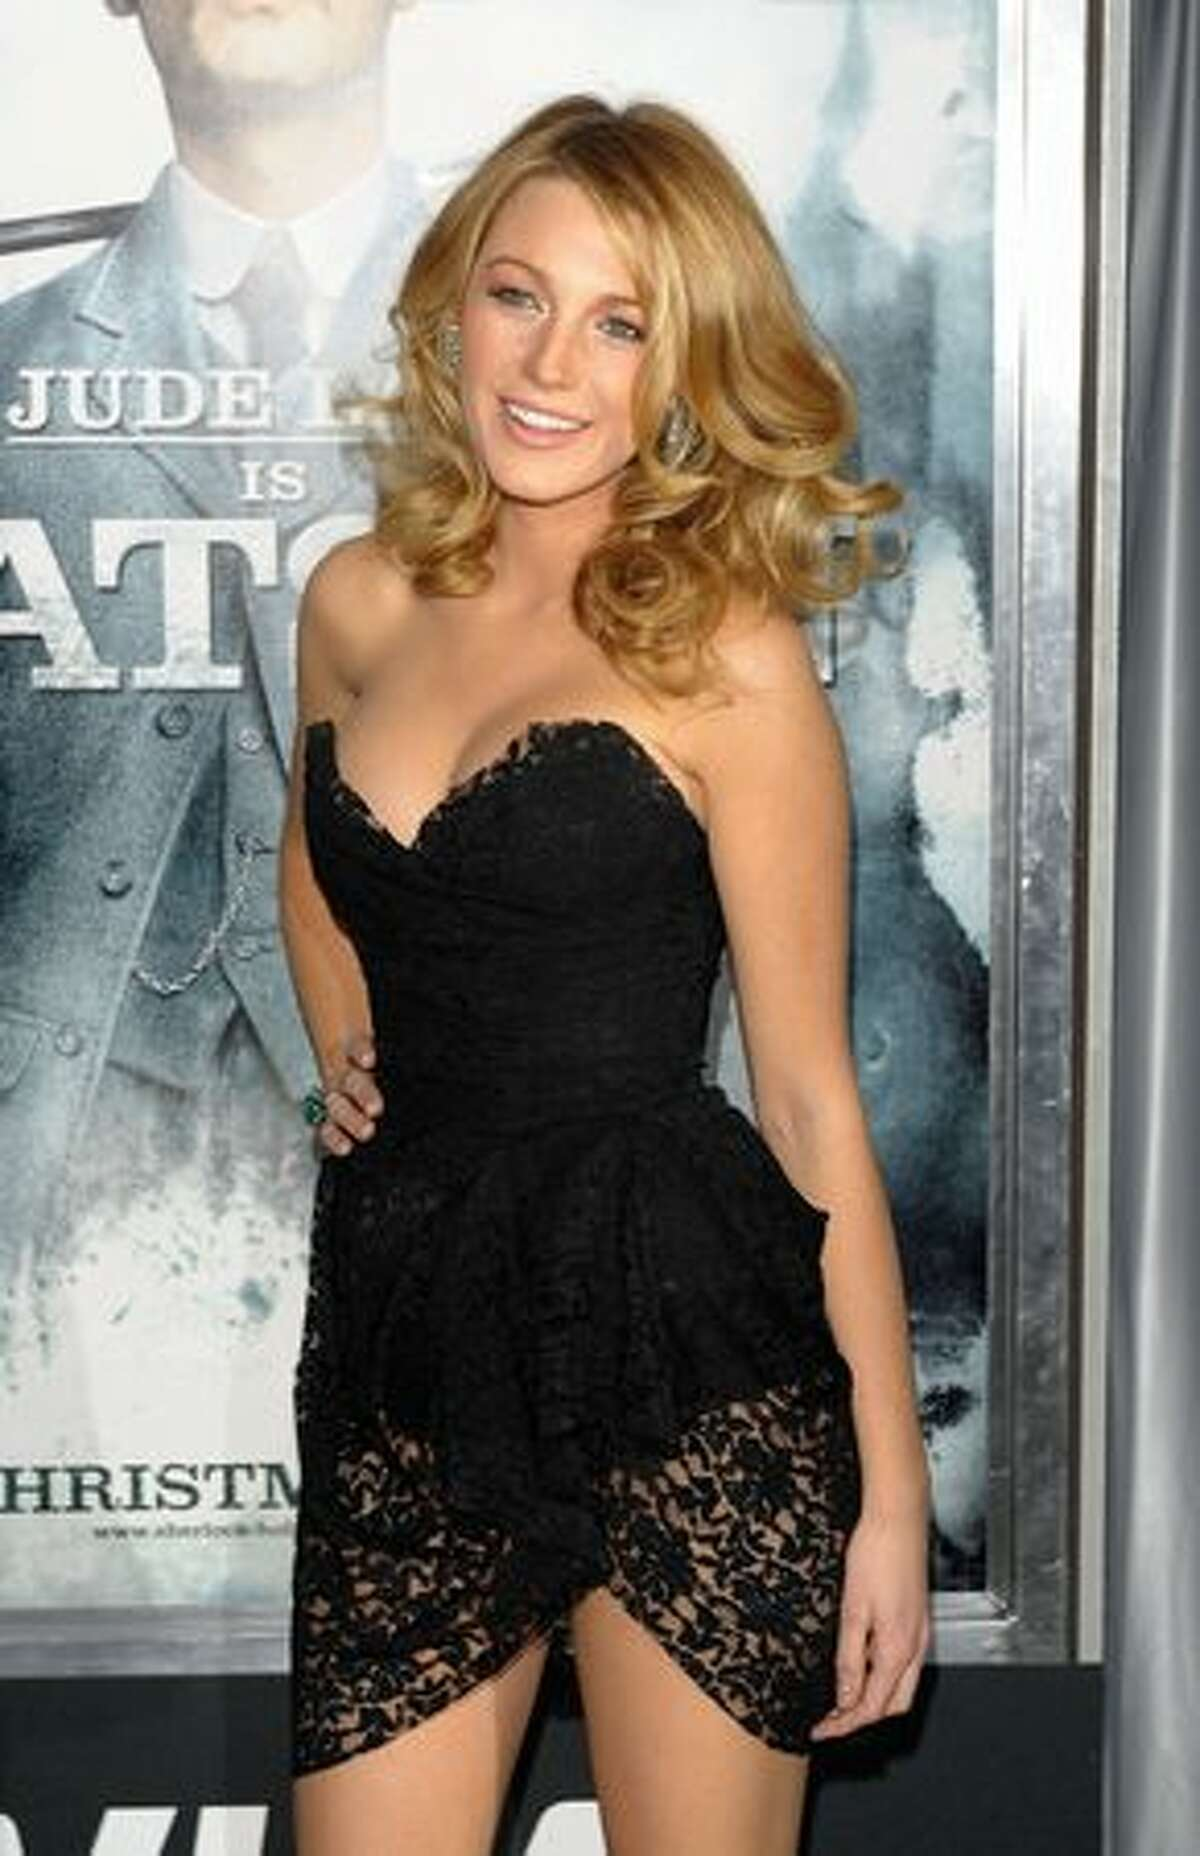 Actress Blake Lively attends the premiere of